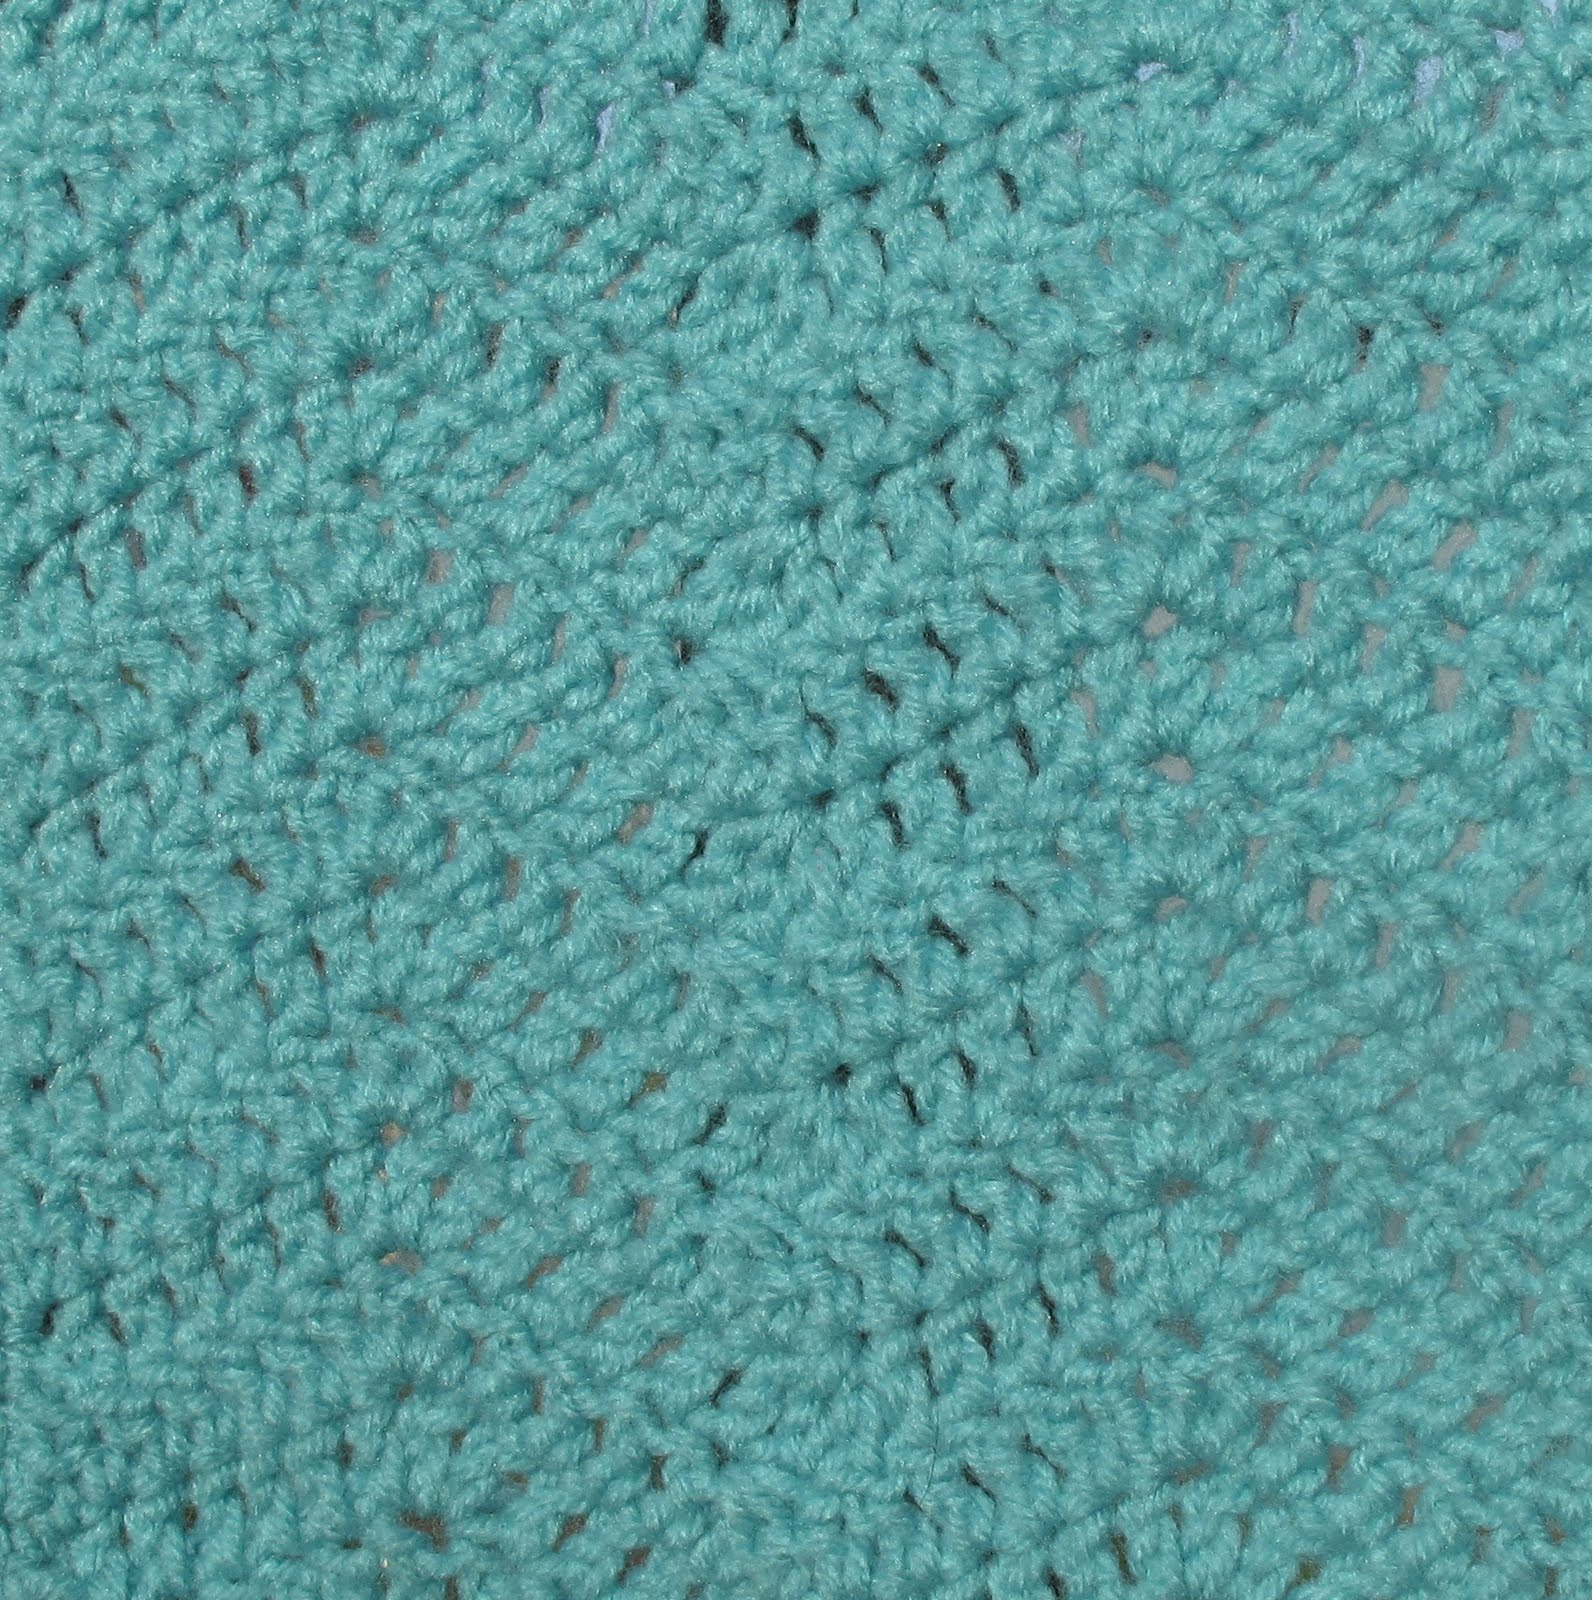 Crochet Stitches Dc3tog : Designed by Laurinda Reddig of ReCrochetions